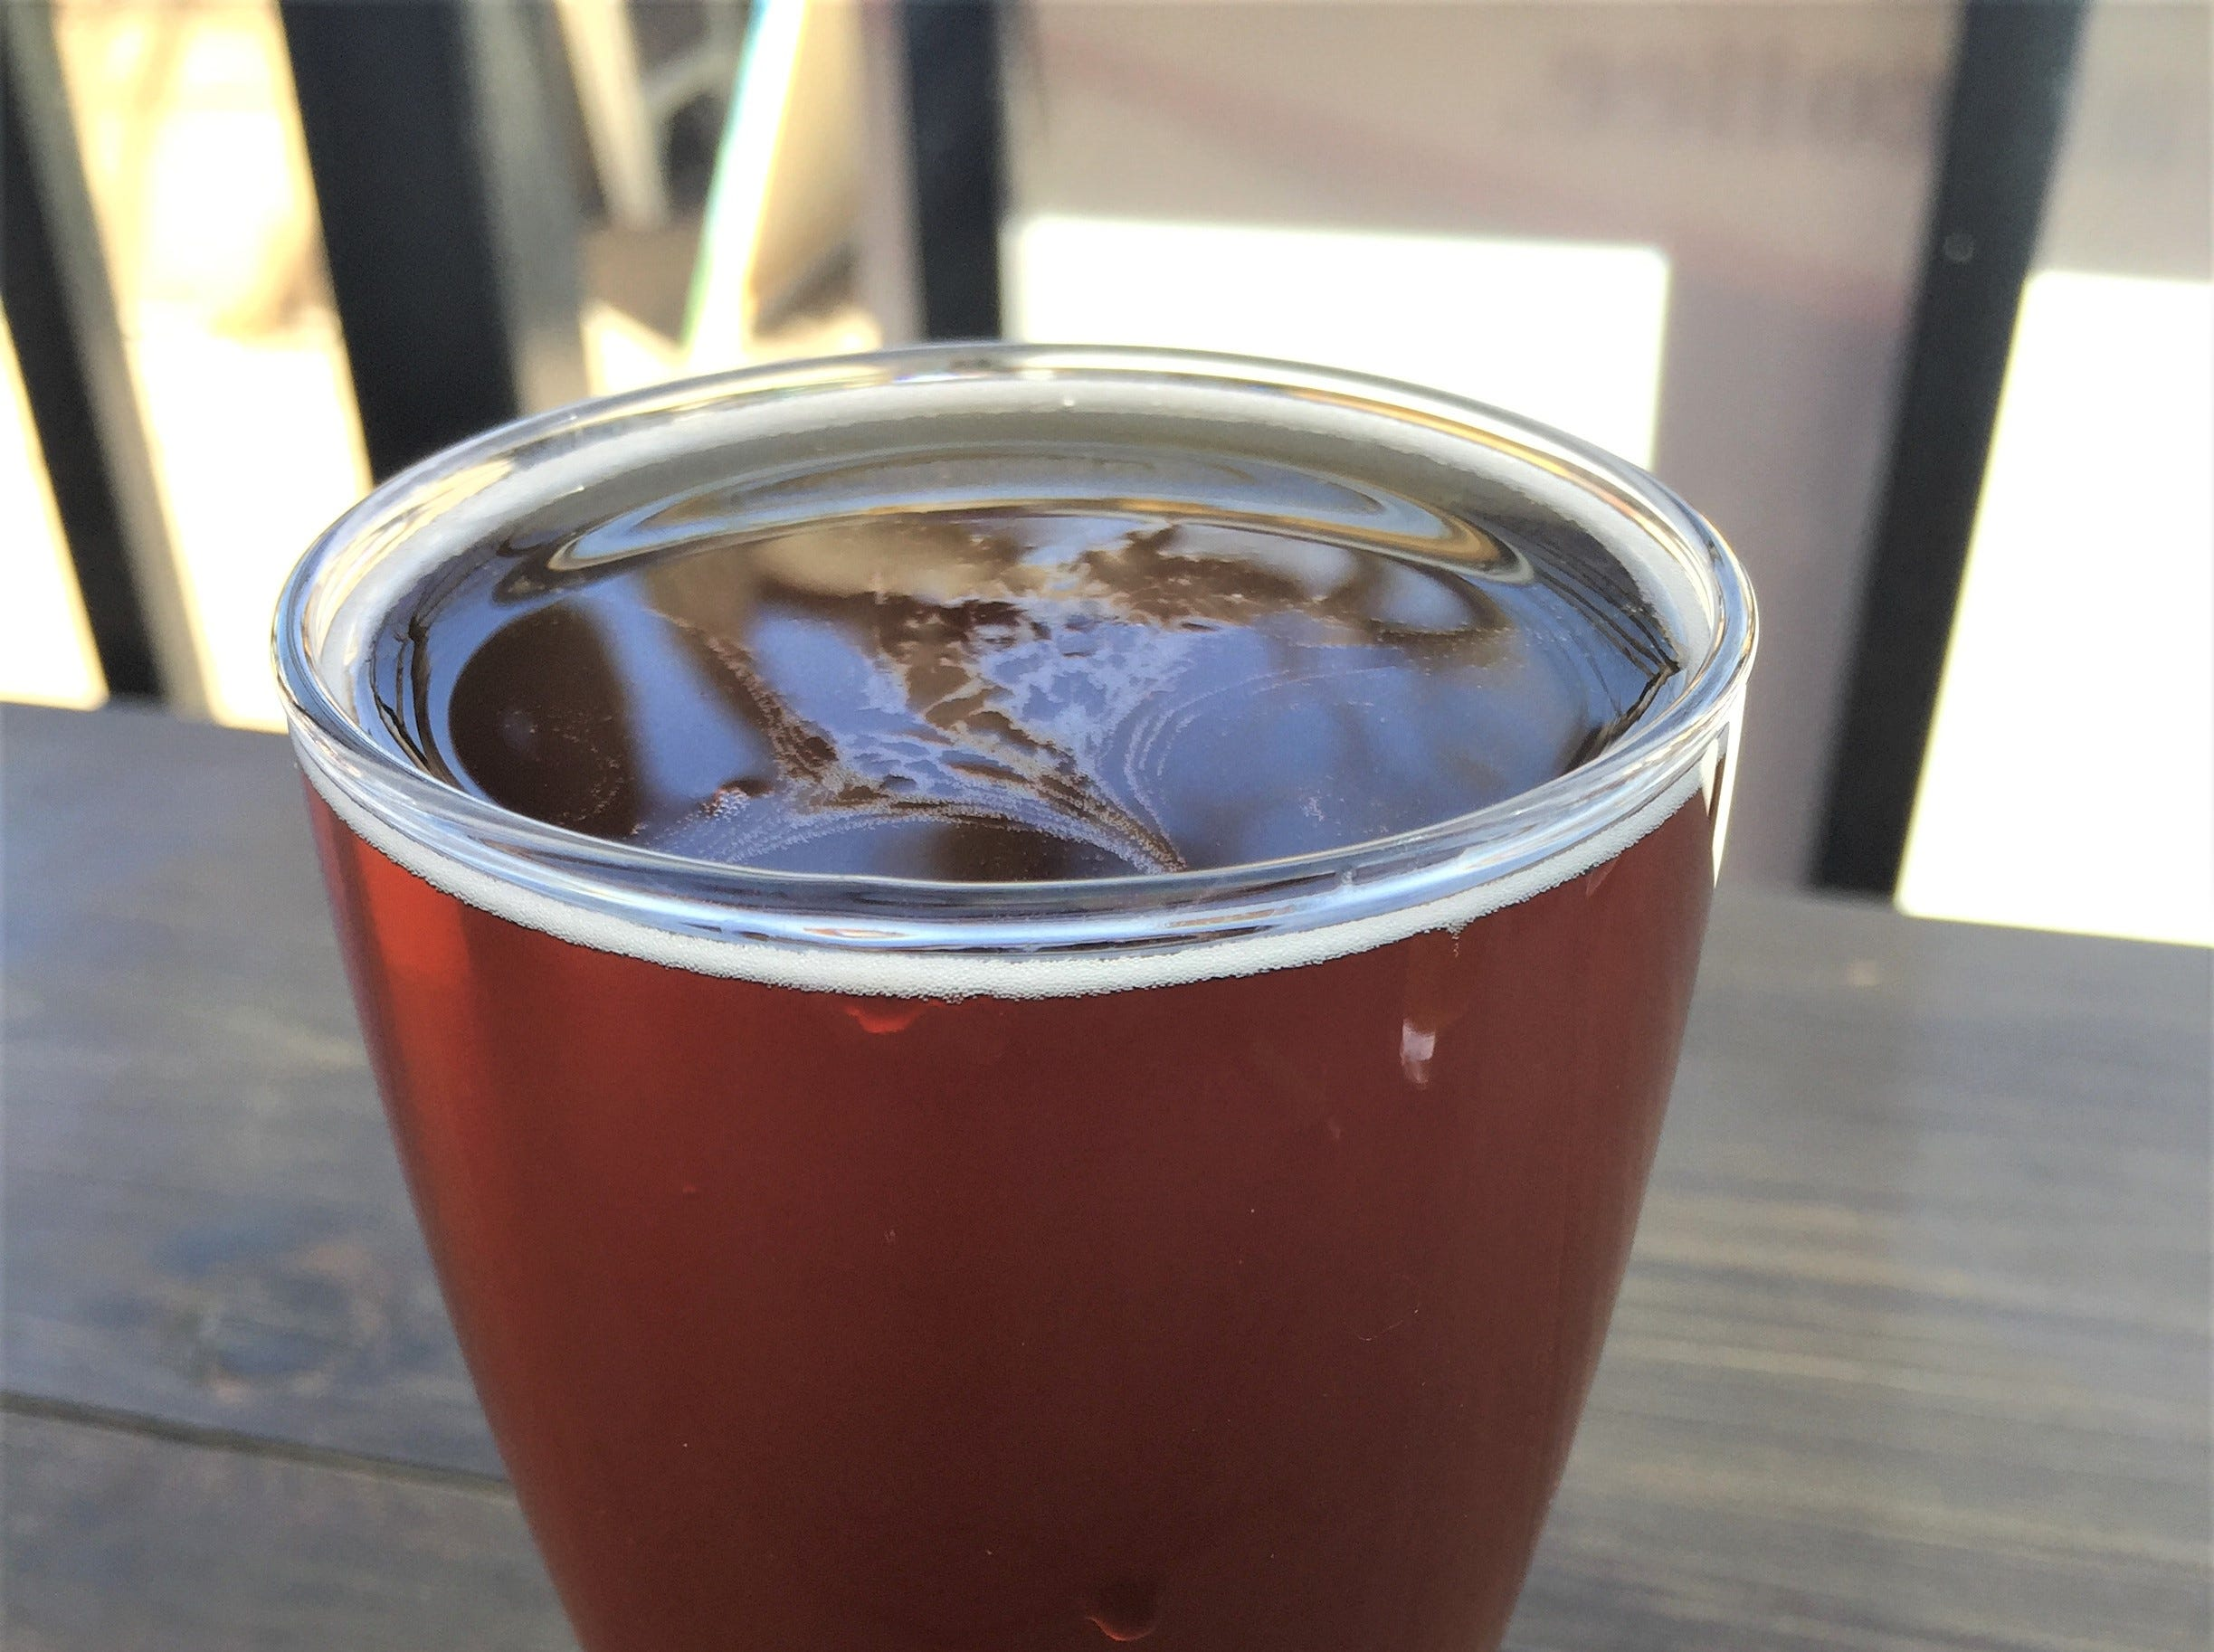 According to Little Toad Creek brewer Marion Spragg, Little Toad Creek's best seller is their signature Copper Ale. You should try the Copper Ale if you're a fan of a darker lager.